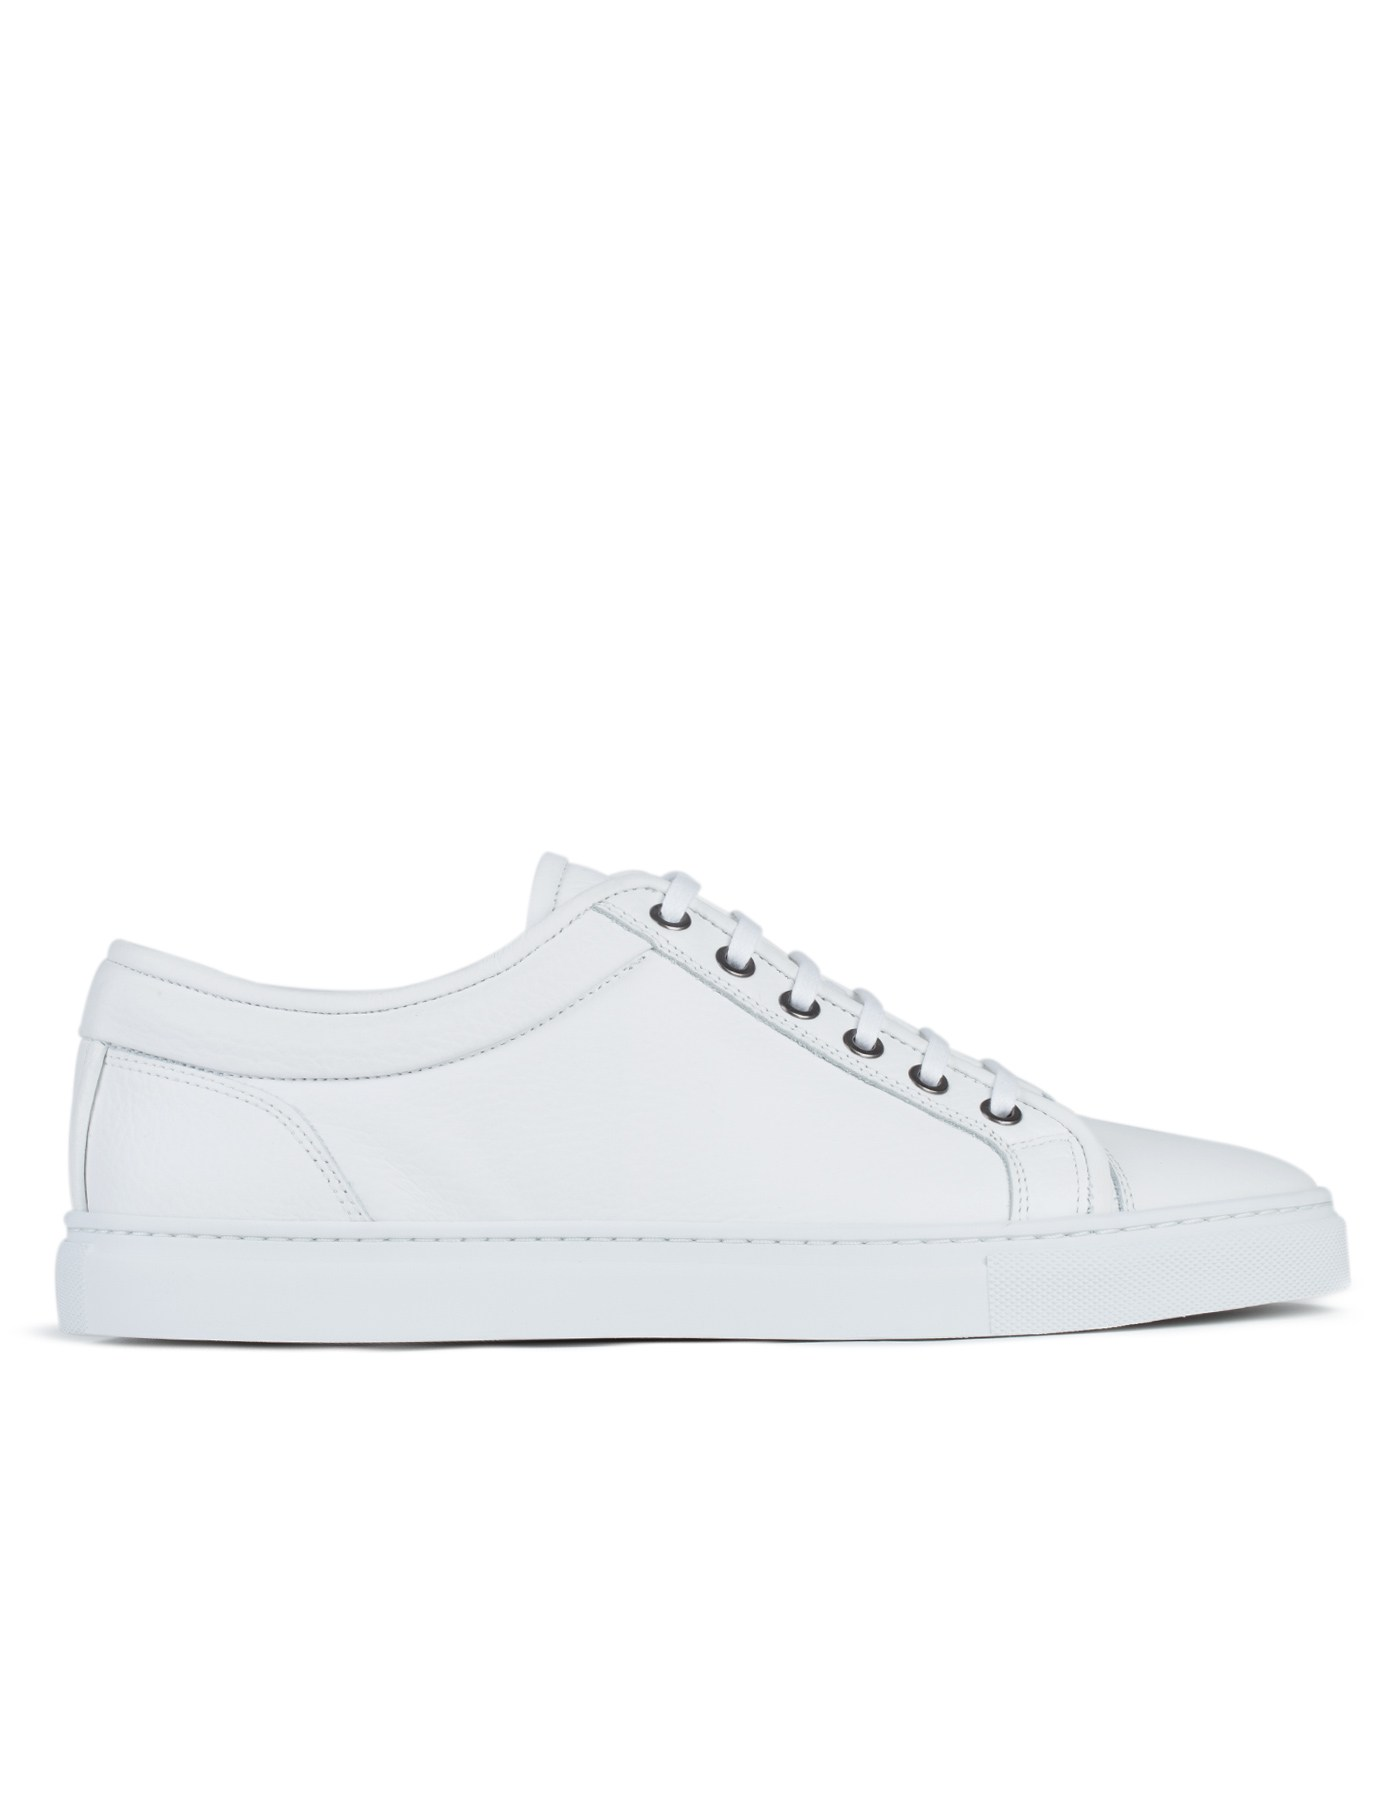 ETQ Low white leather sneaker